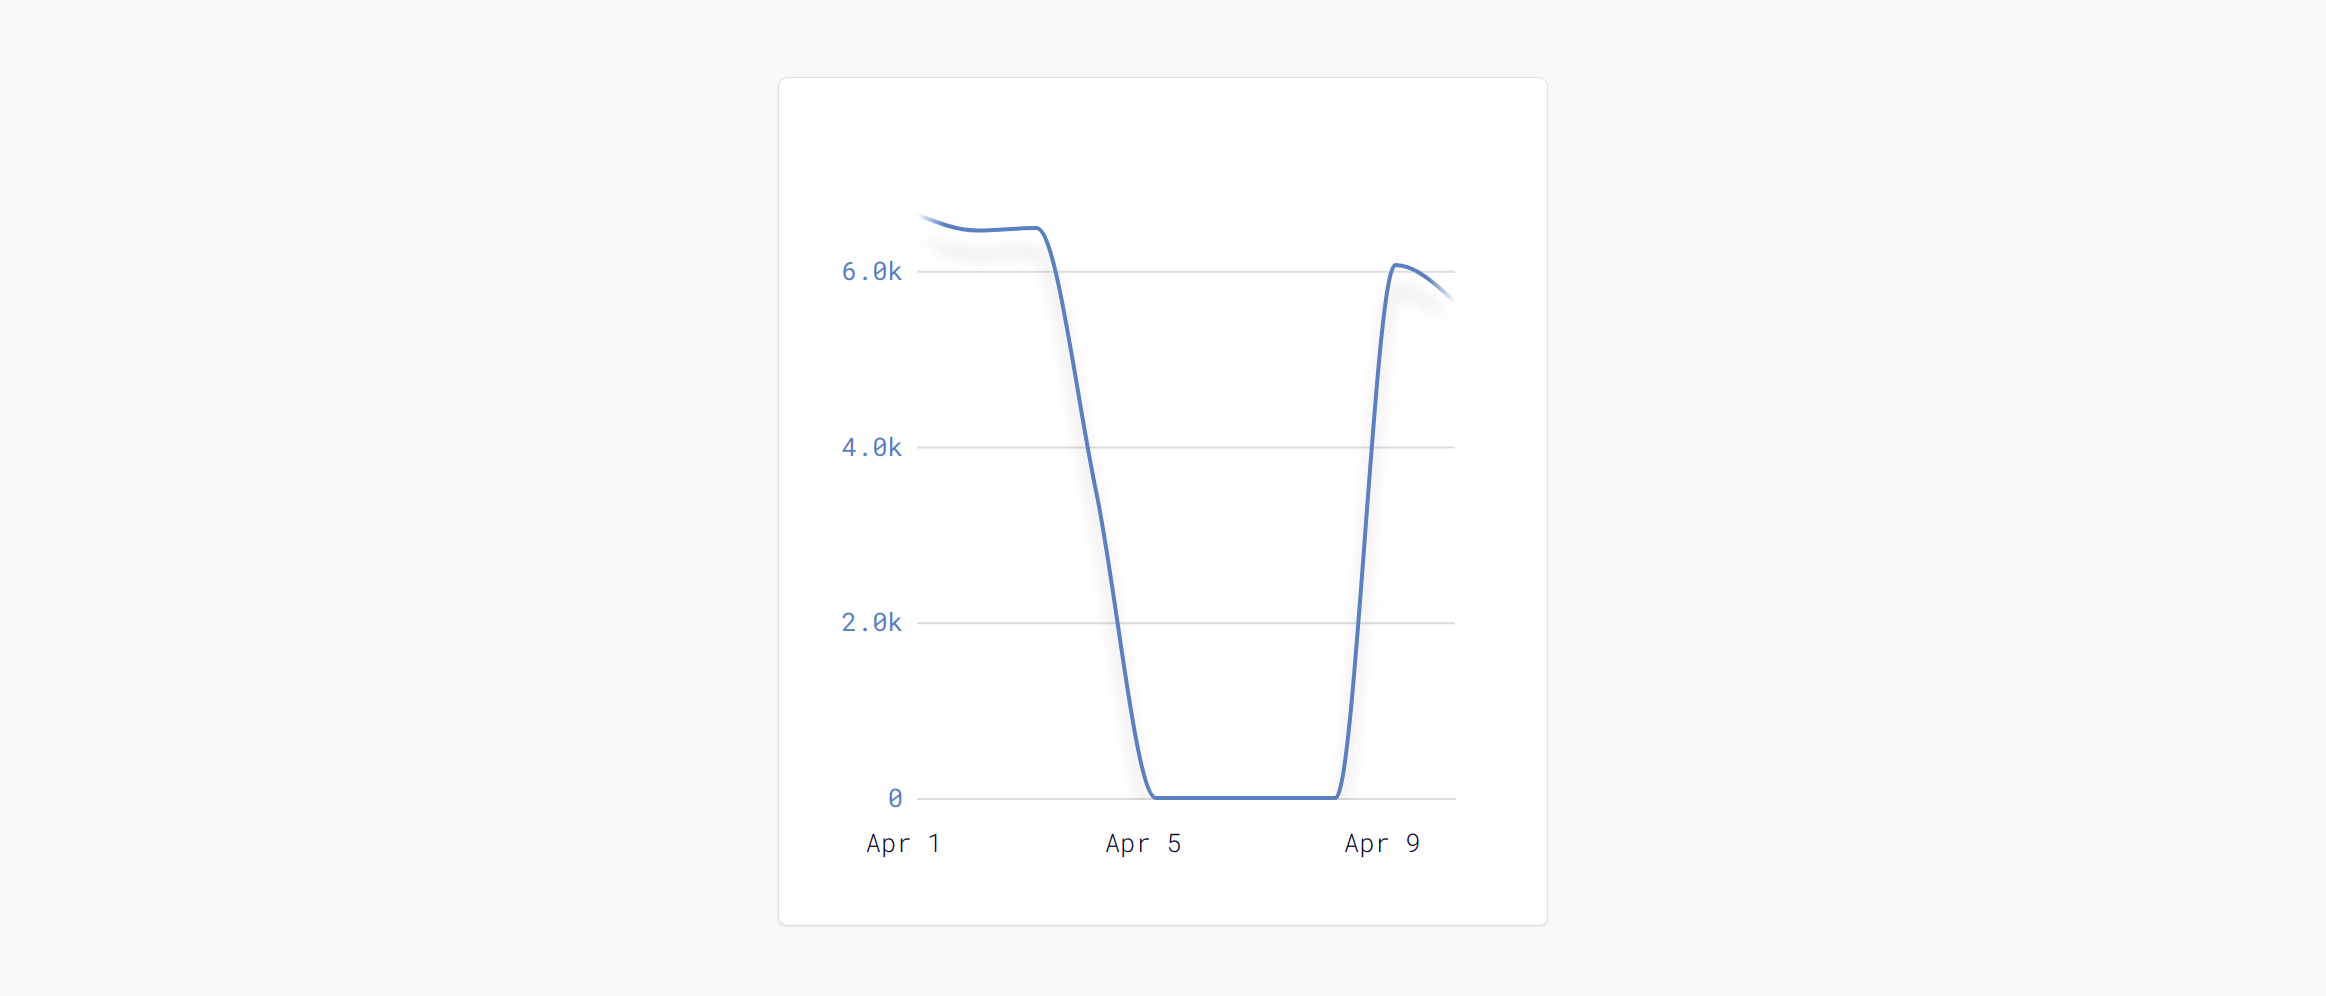 How to create a dynamic, responsive time series graph with